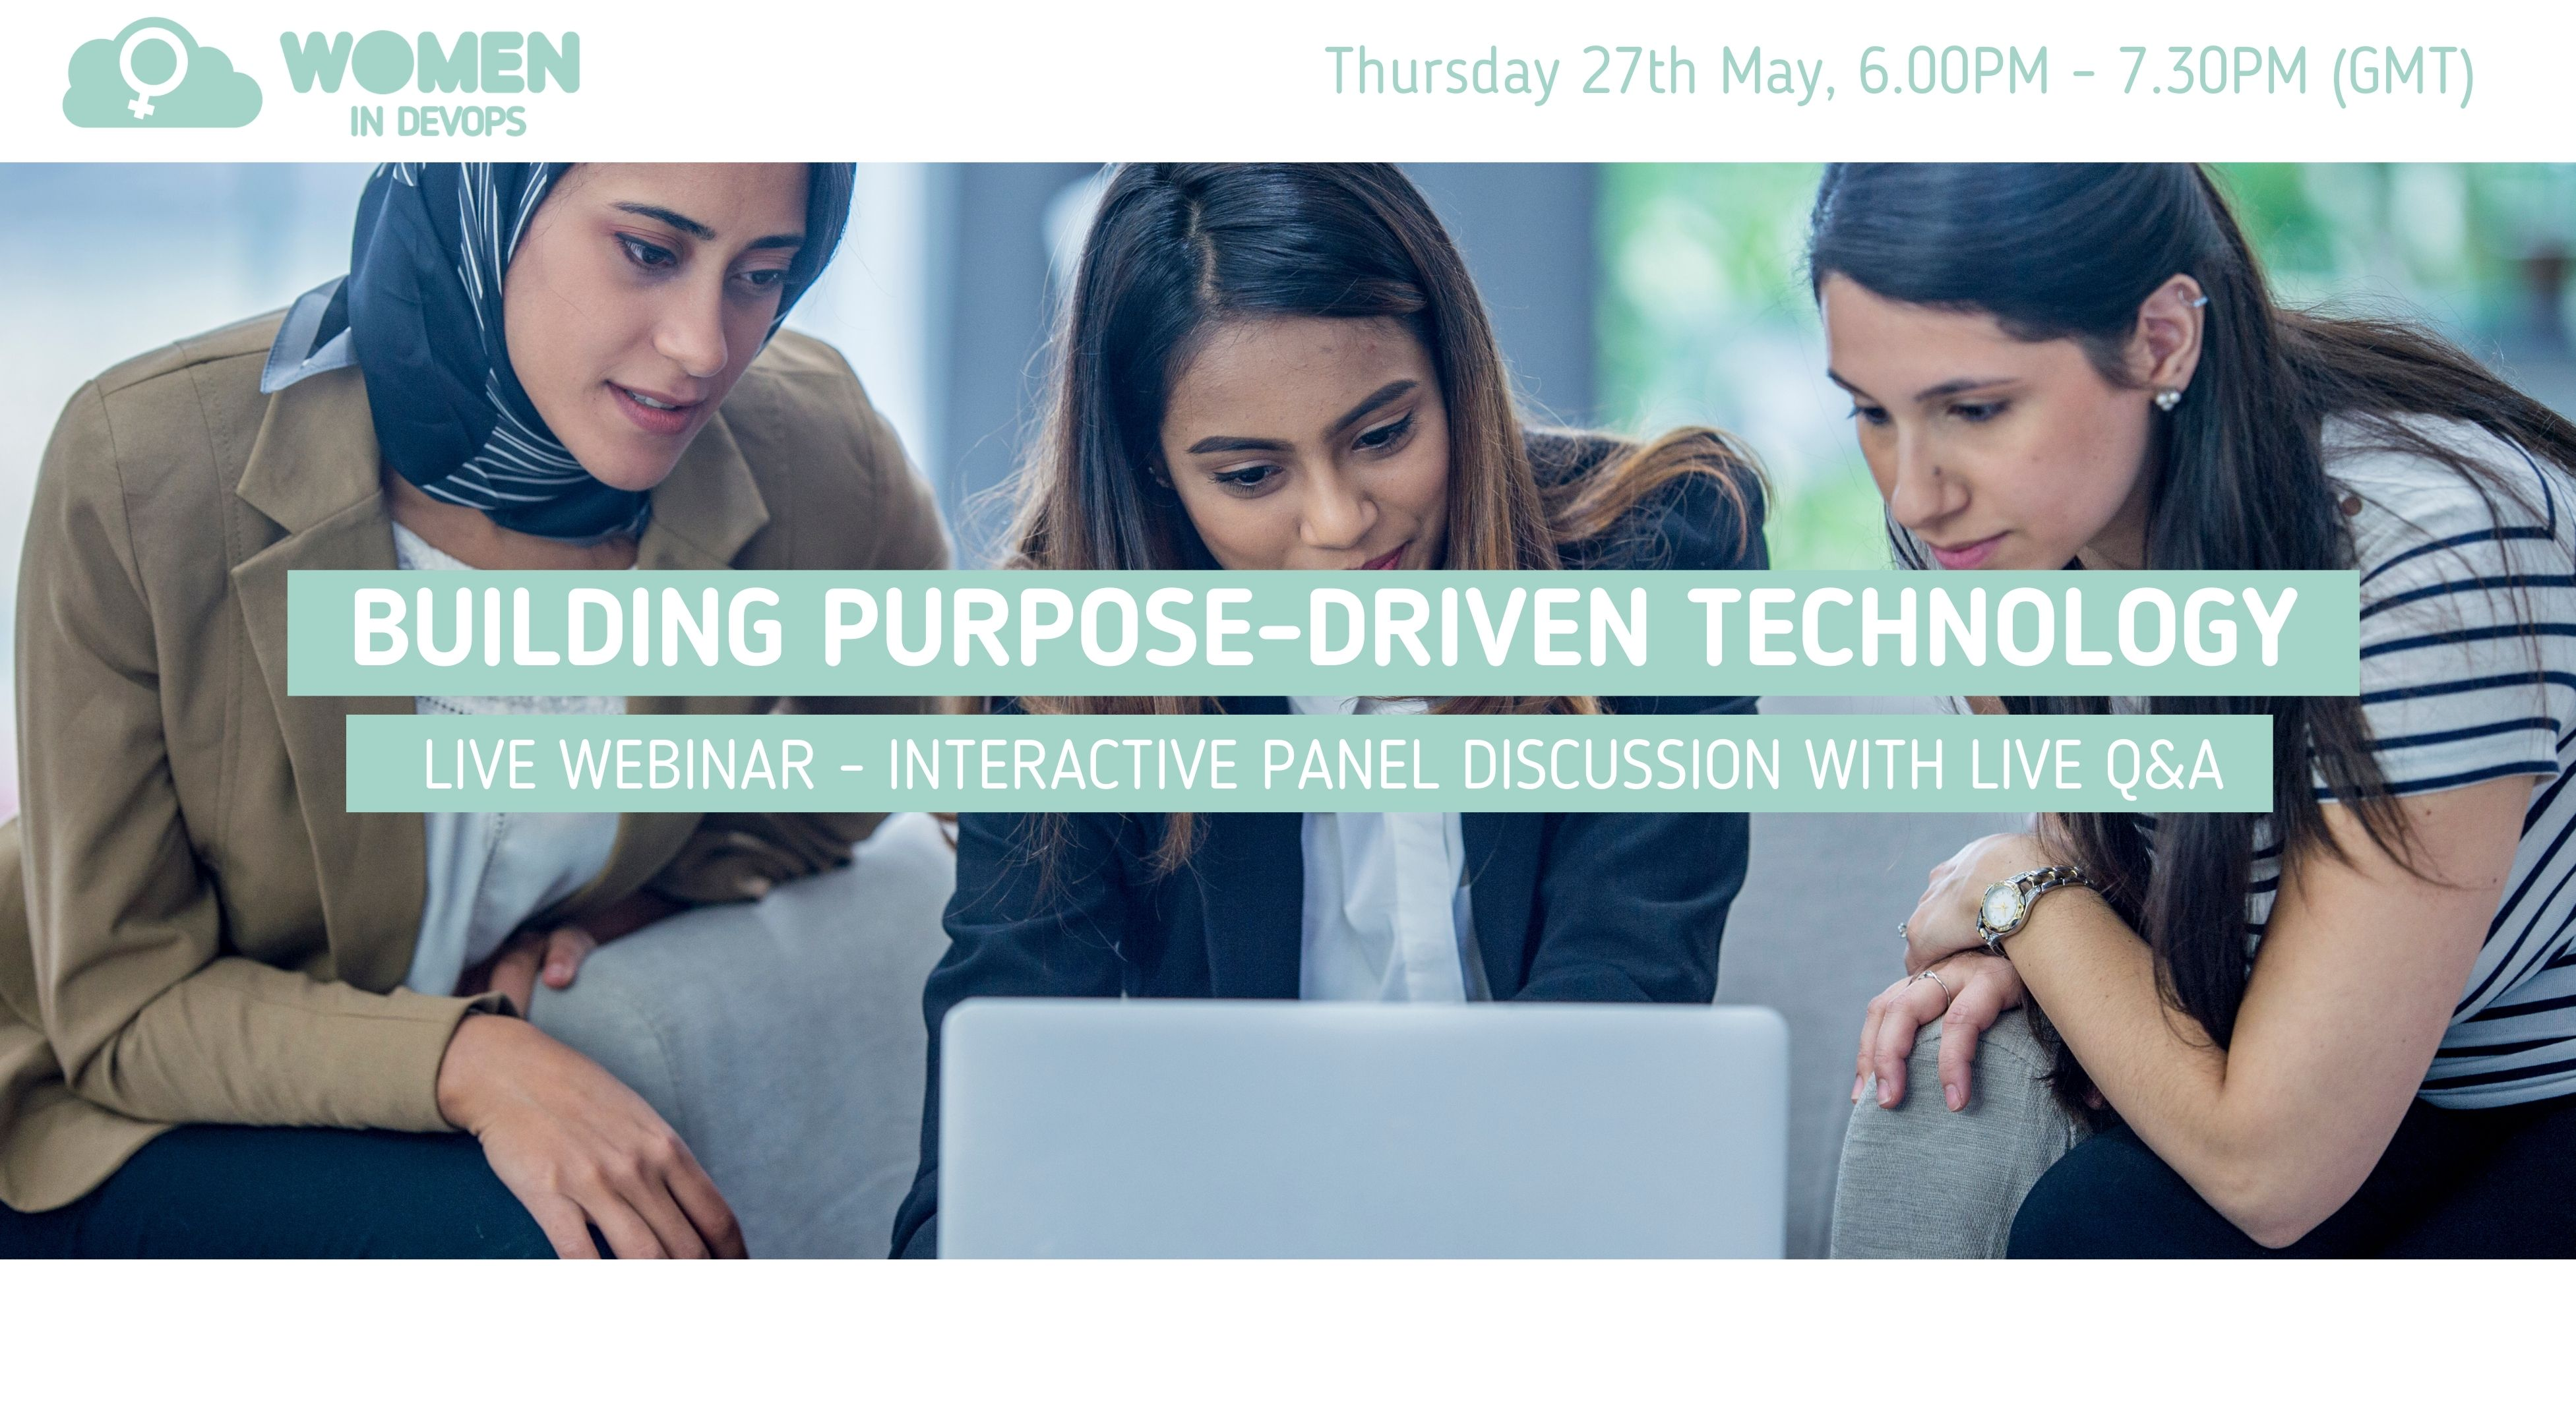 Webinar #14 - Building purpose-driven technology